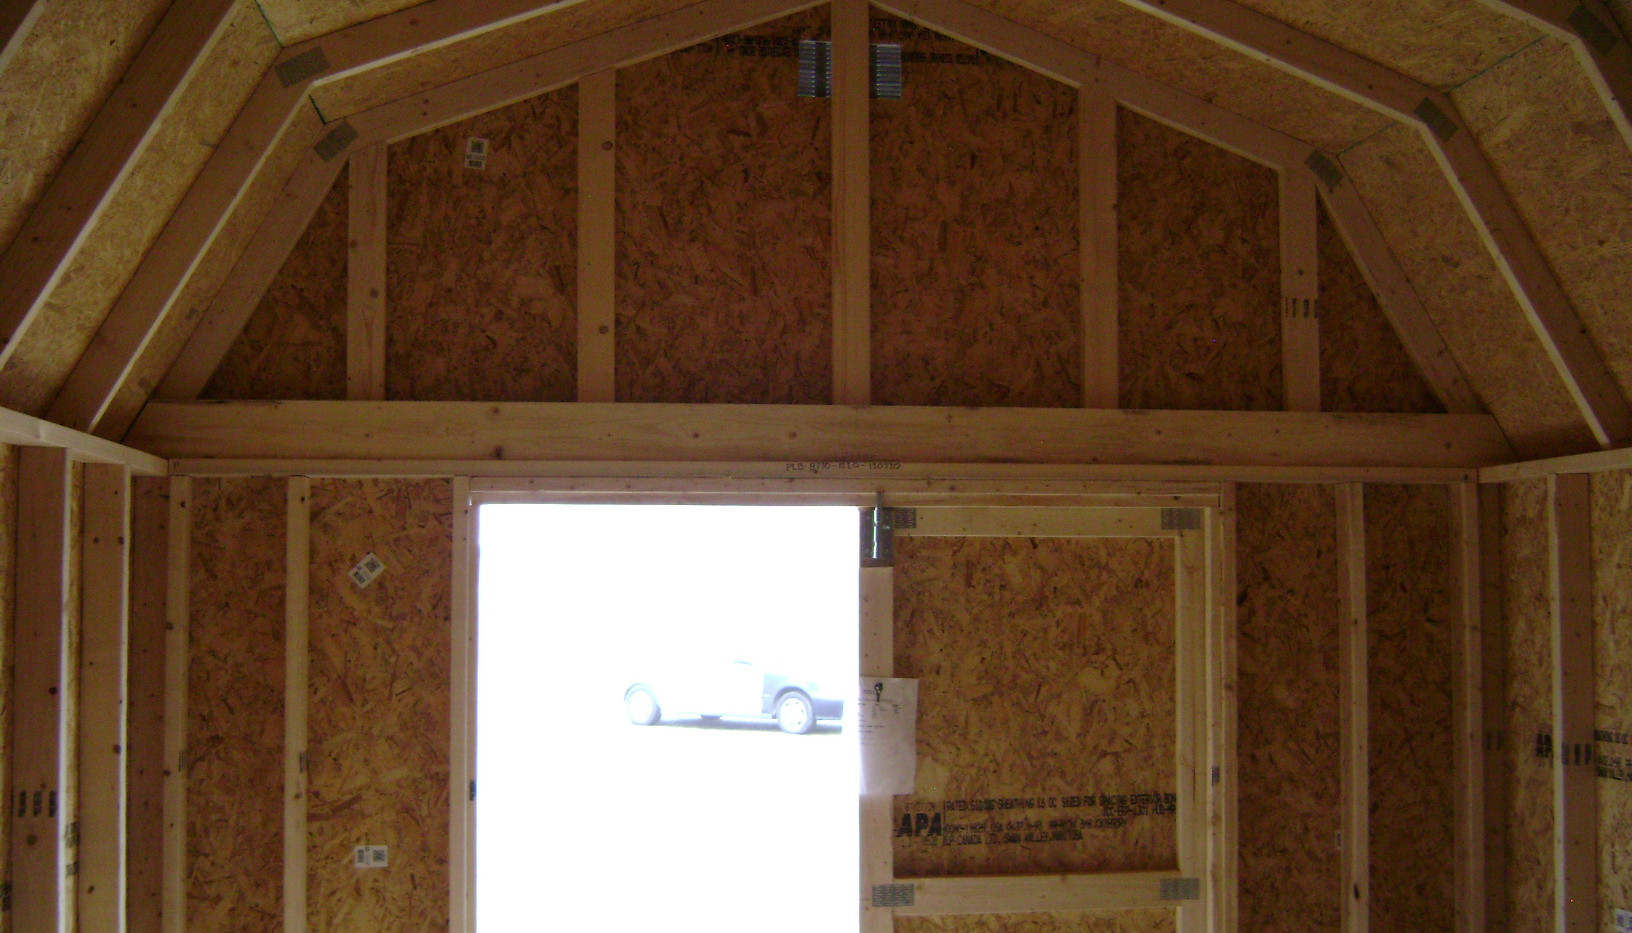 Lofted Barn - PLB-8770-1220-120720 (5).J